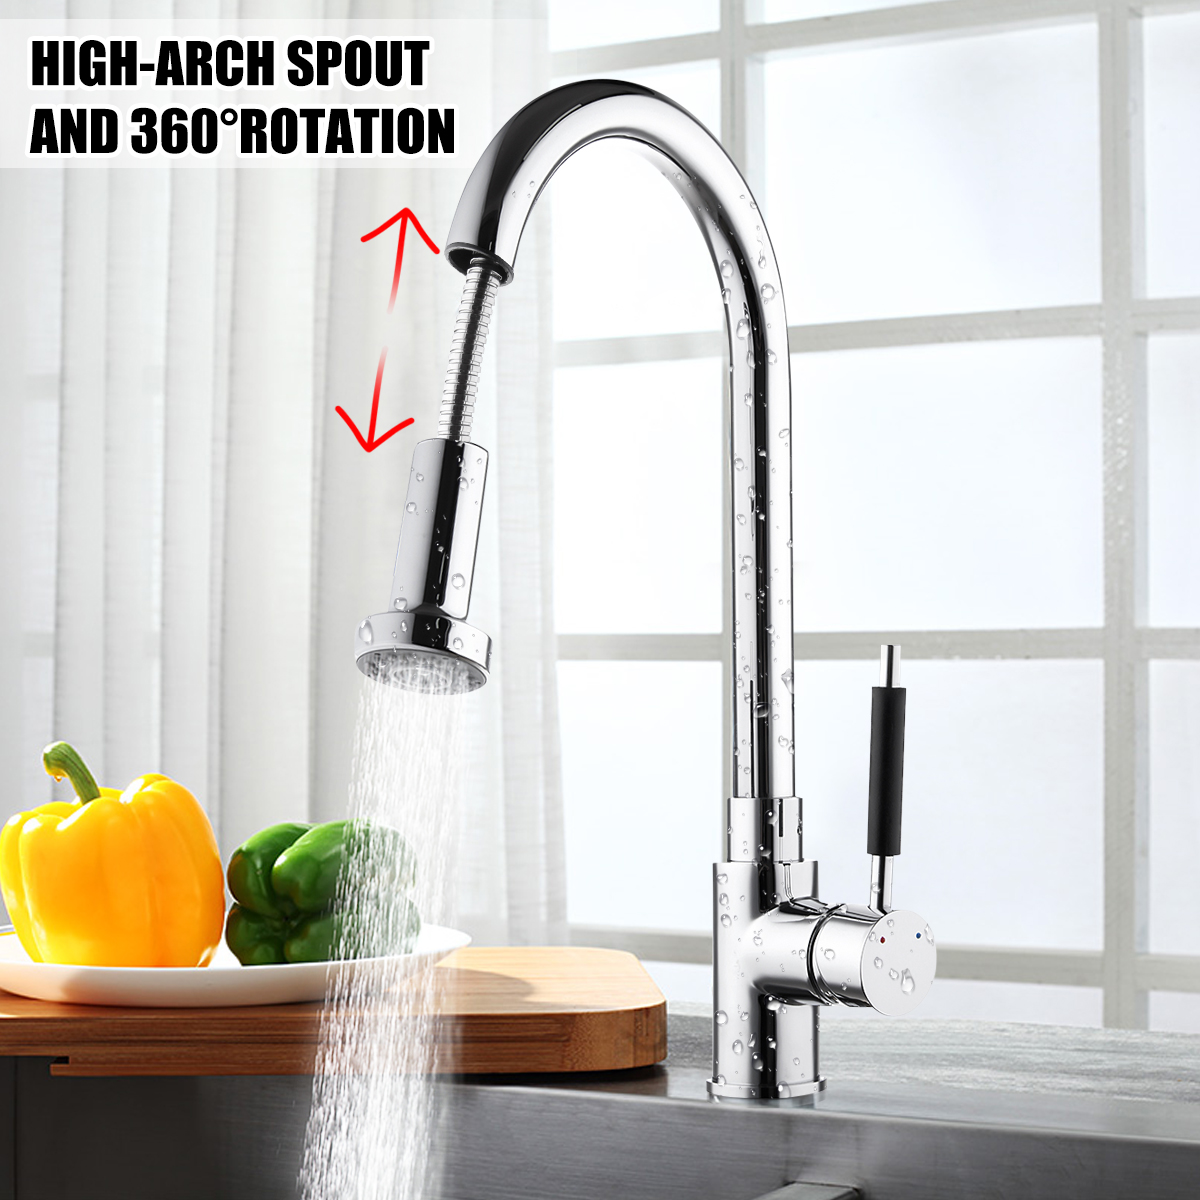 Single Handle Kitchen Faucet Brass Brushed 360 Degree Rotate Kitchen Sink Faucet Pull Out Water Spray Mixer Tap Torneira Cozinha цена и фото